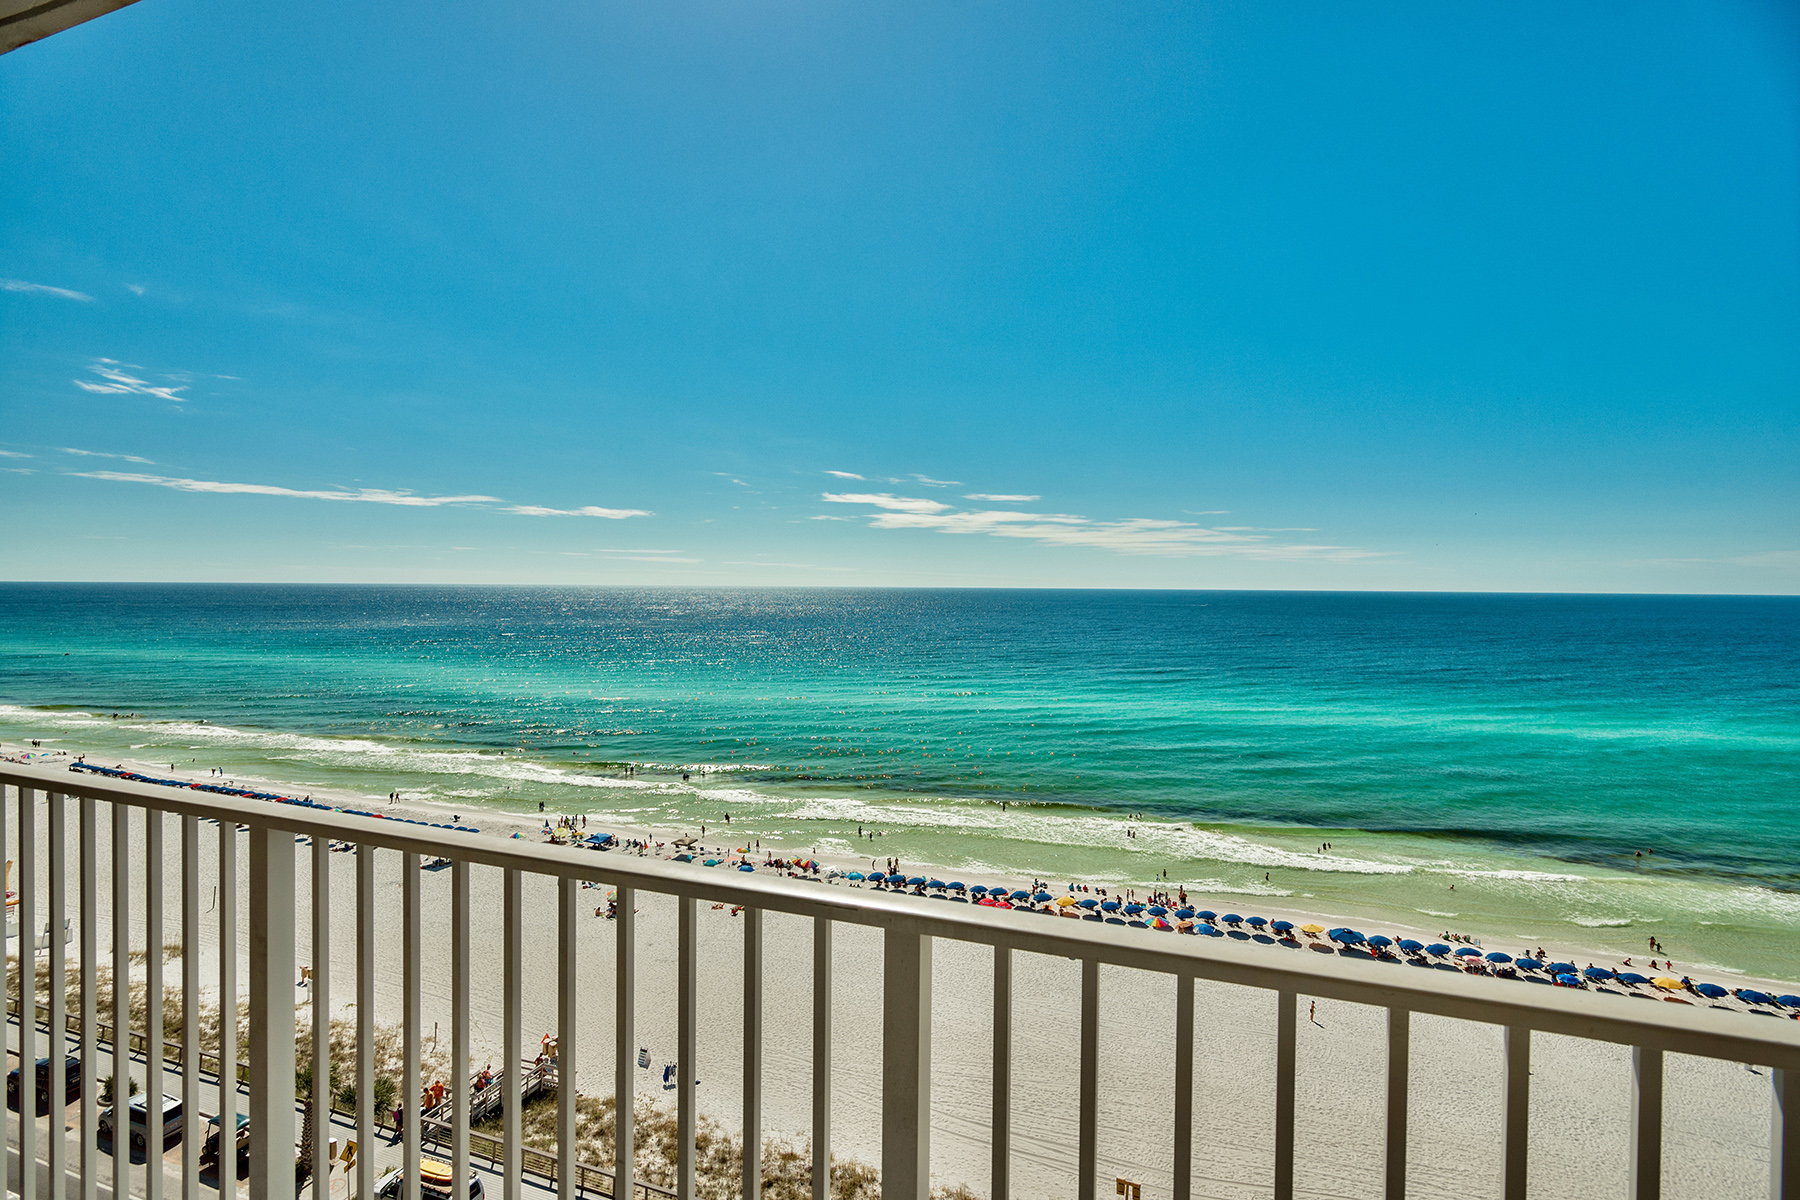 Appartement en copropriété pour l Vente à UNOBSTRUCTED GULF VIEW GETAWAY OR INCOME PROPERTY 1160 Scenic Gulf Drive A-1007 Miramar Beach, Florida, 32550 États-Unis